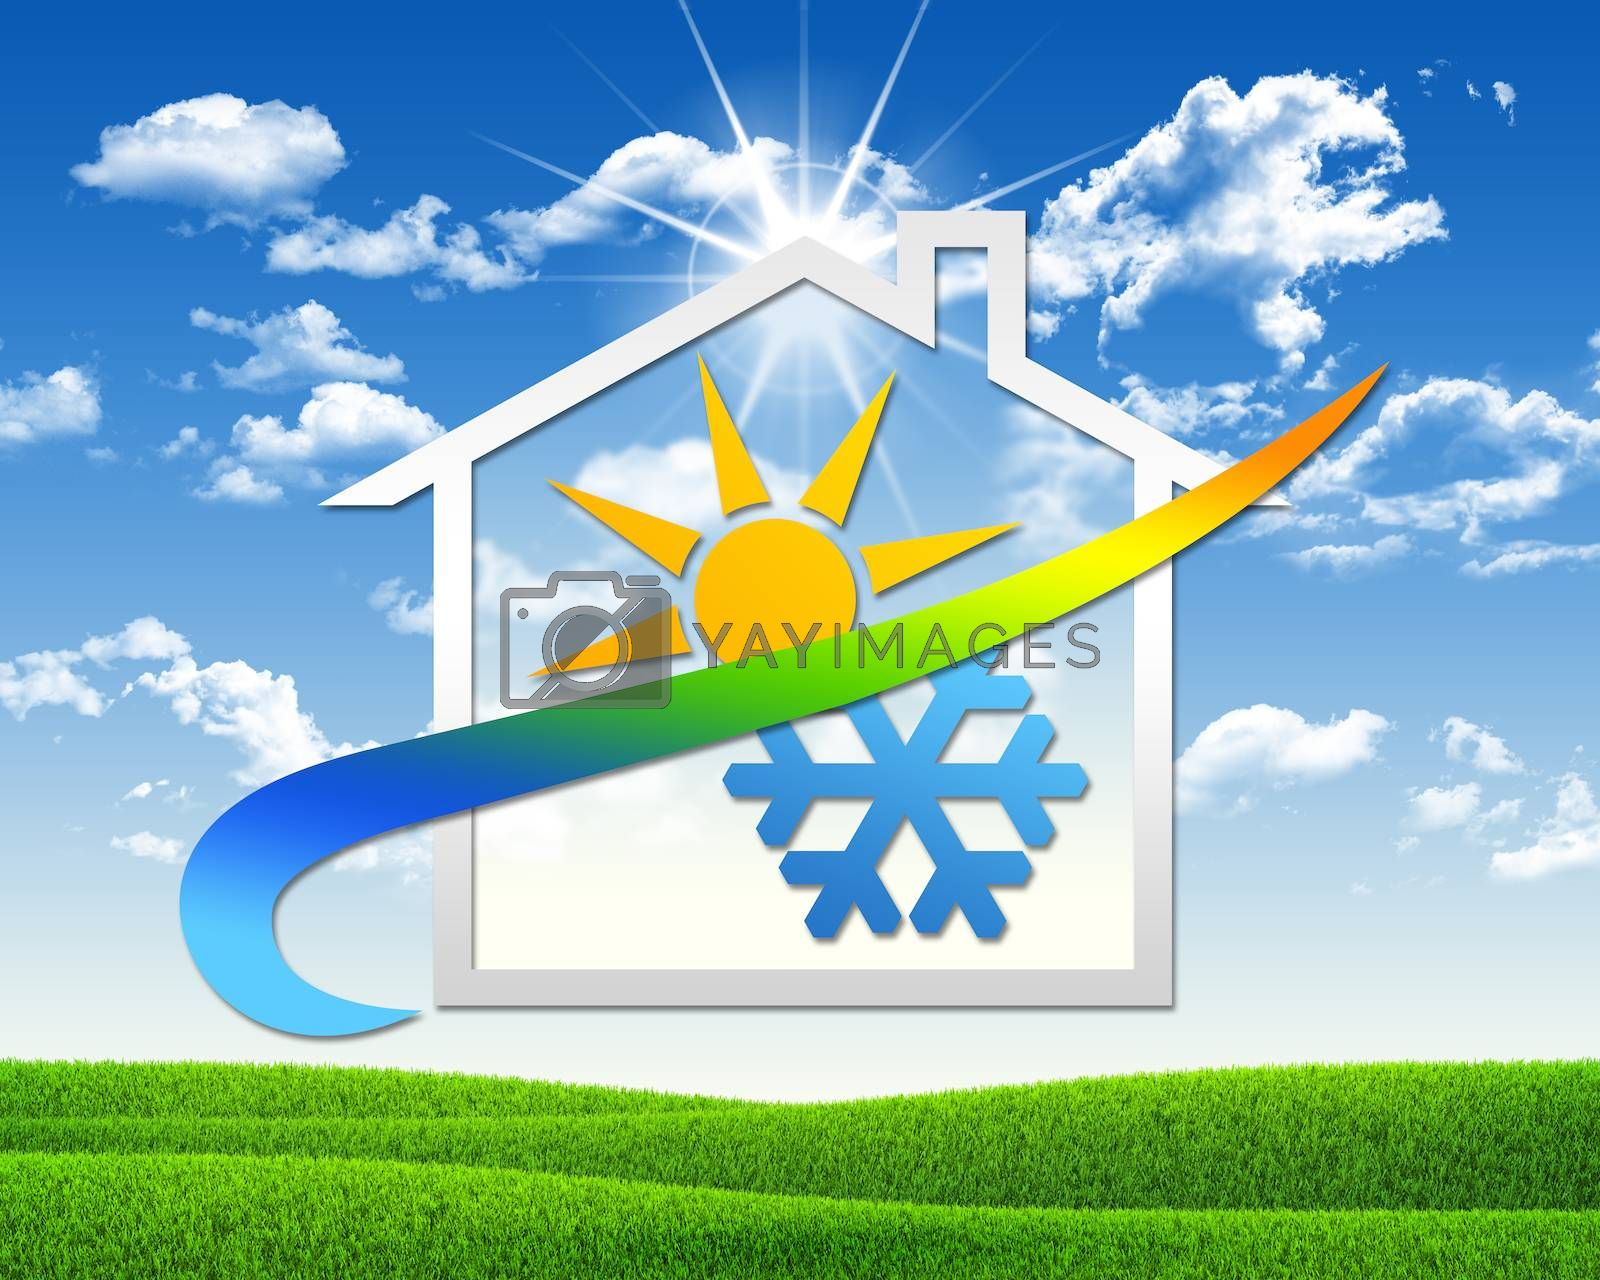 House icon with weather symbol. Green grass and blue sky as backdrop